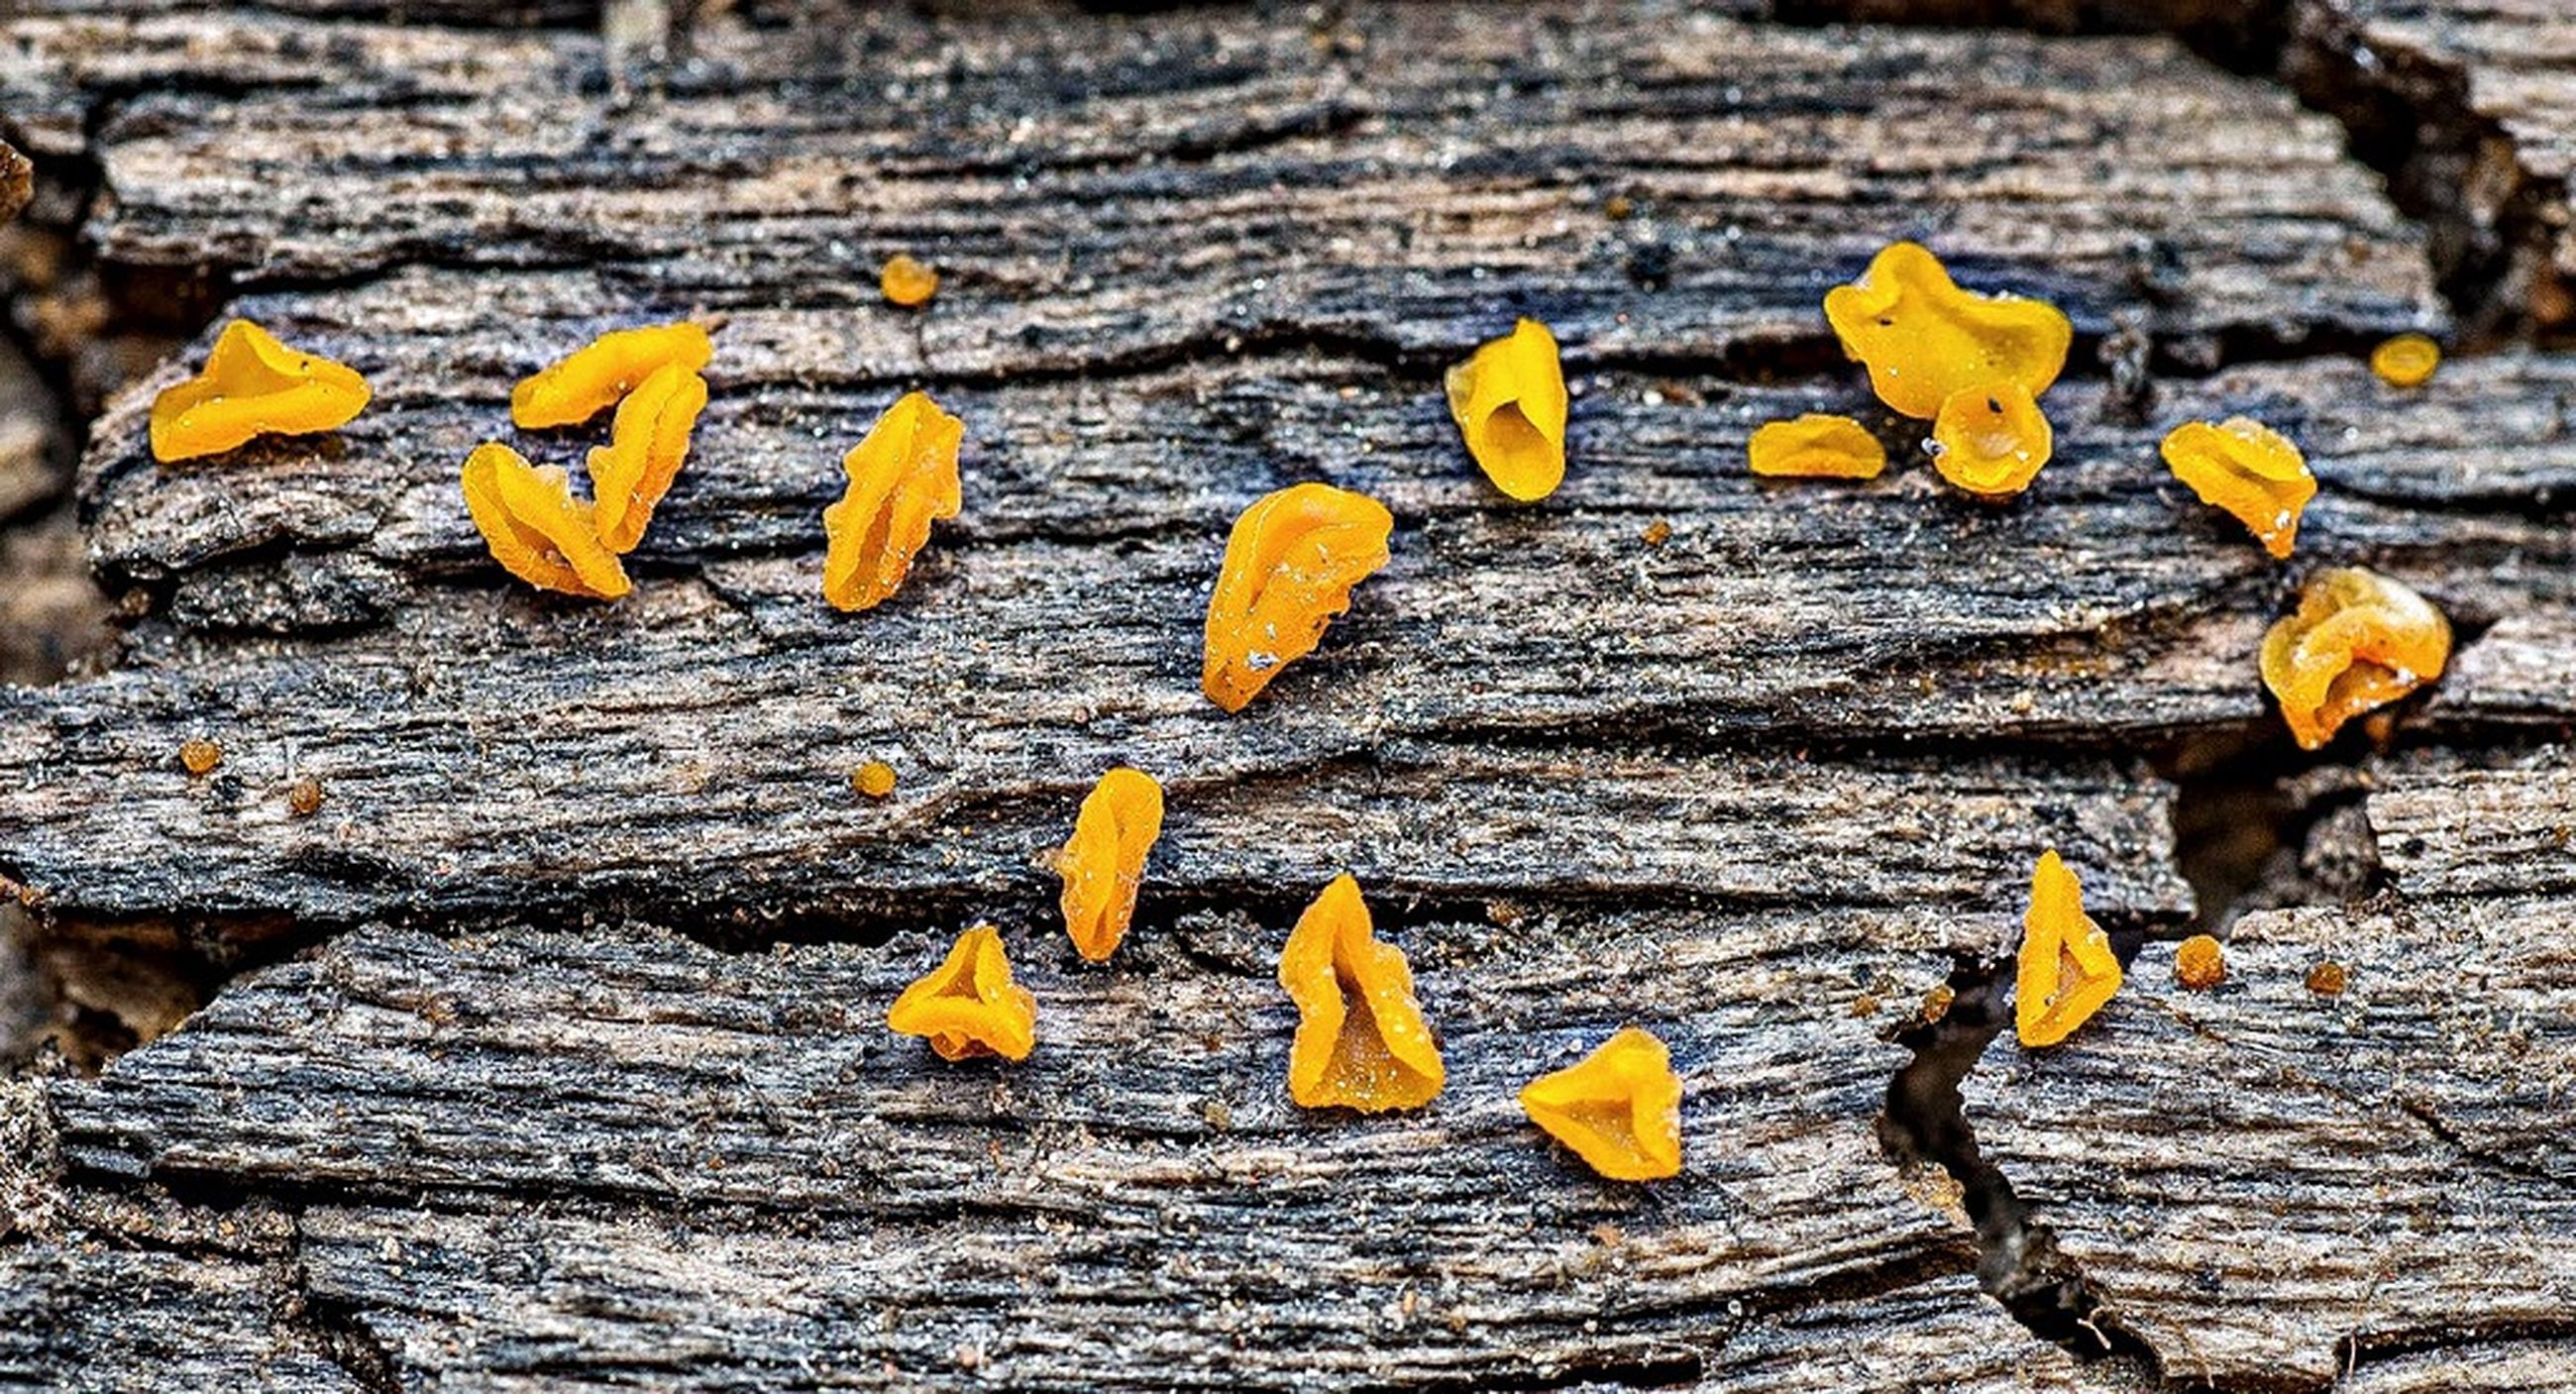 yellow, tree trunk, textured, nature, close-up, growth, rough, tree, bark, day, beauty in nature, natural pattern, outdoors, no people, flower, fragility, focus on foreground, wood - material, abundance, full frame